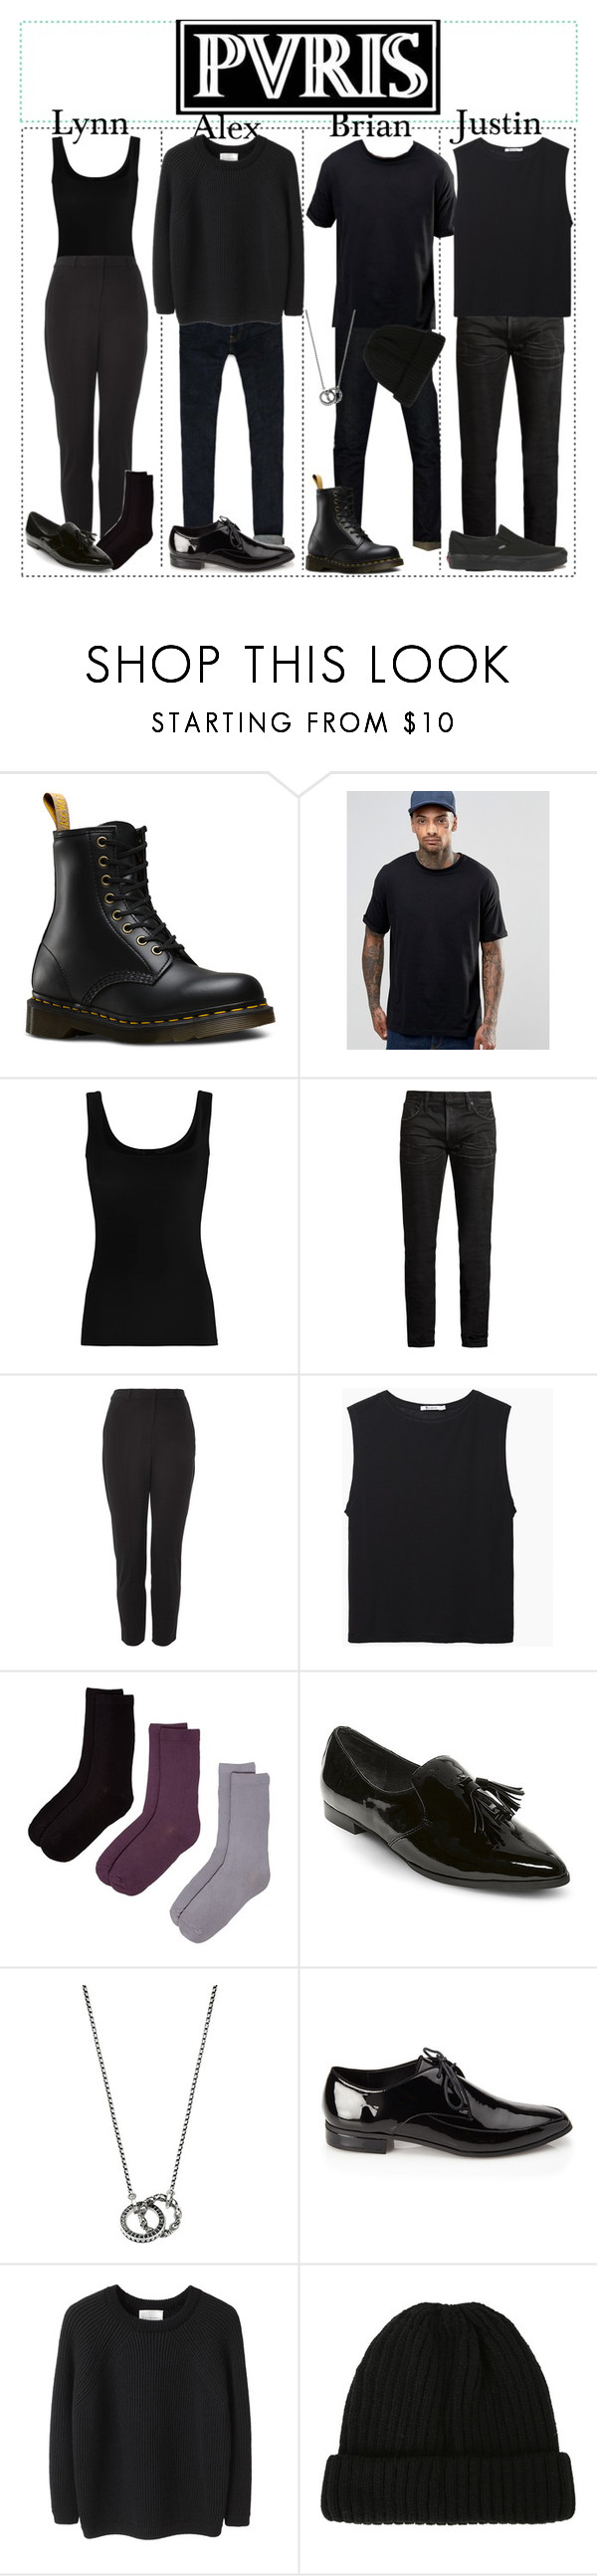 """pvris outfits"" by pvriscvlt ❤ liked on Polyvore featuring Sperry, Dr. Martens, ASOS, Twenty, MasterCraft Union, Topshop, T By Alexander Wang, Hue, Steve Madden and Thomas Sabo"